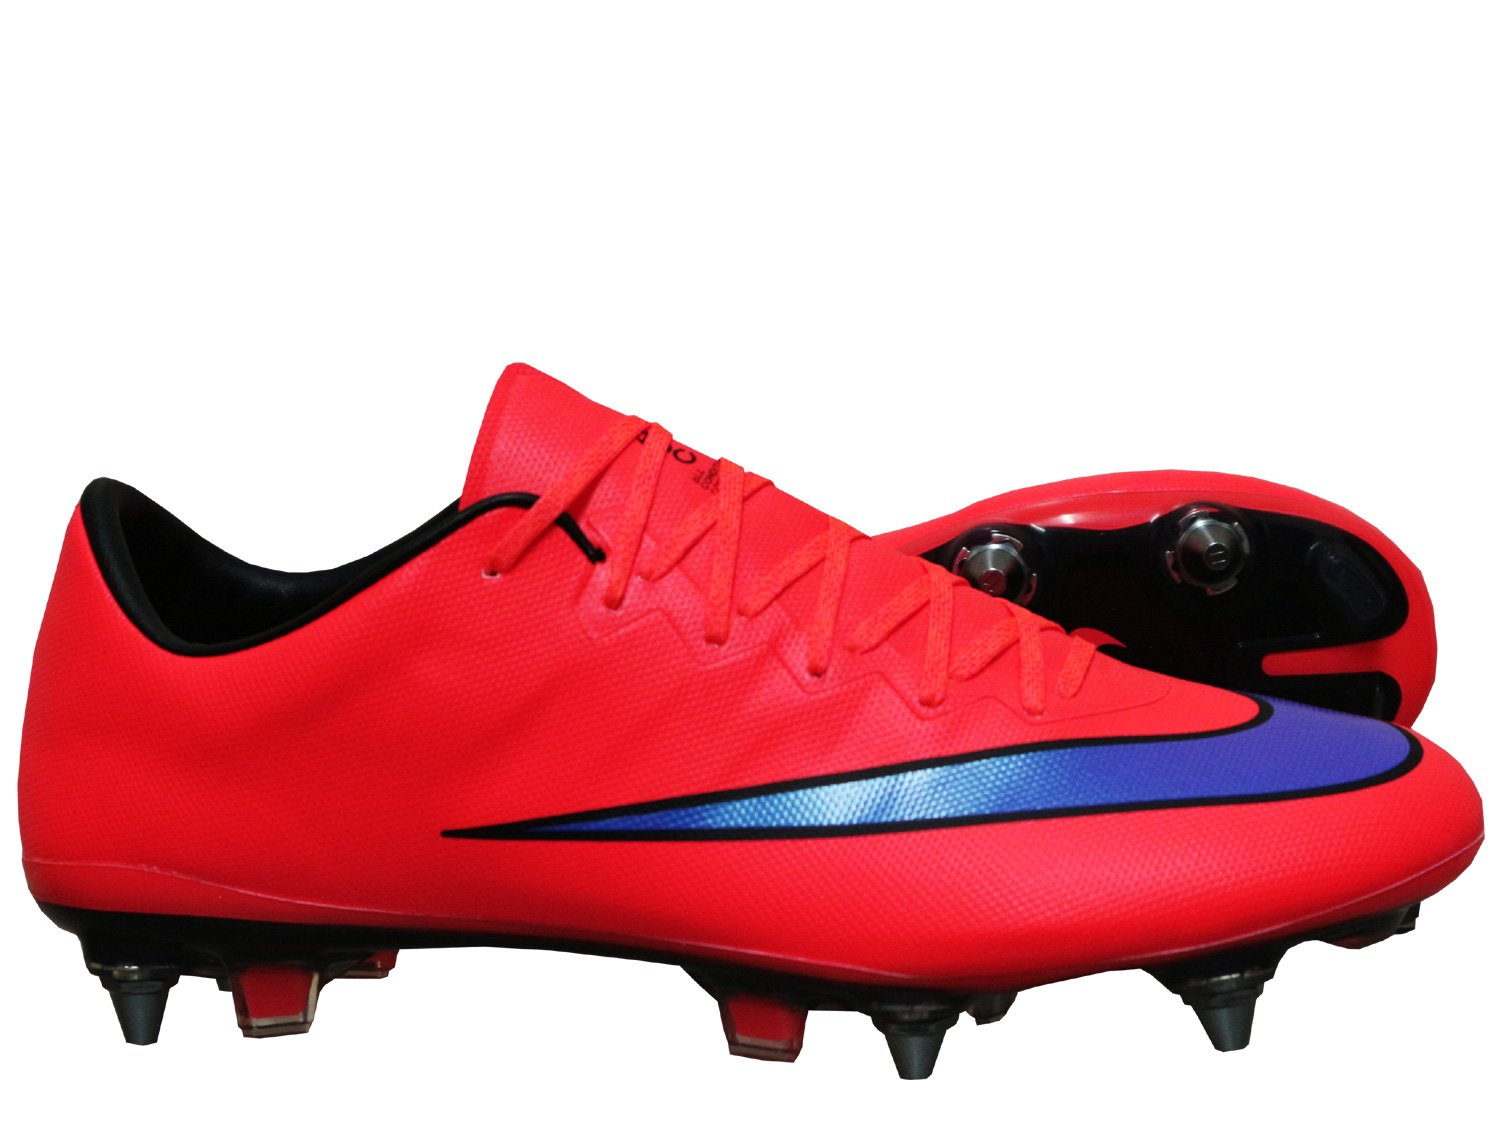 timeless design e7a8c 1083b Nike Mercurial Vapor X SG Pro Football Boots Cleats - Football Shoe Red   Amazon.co.uk  Sports   Outdoors